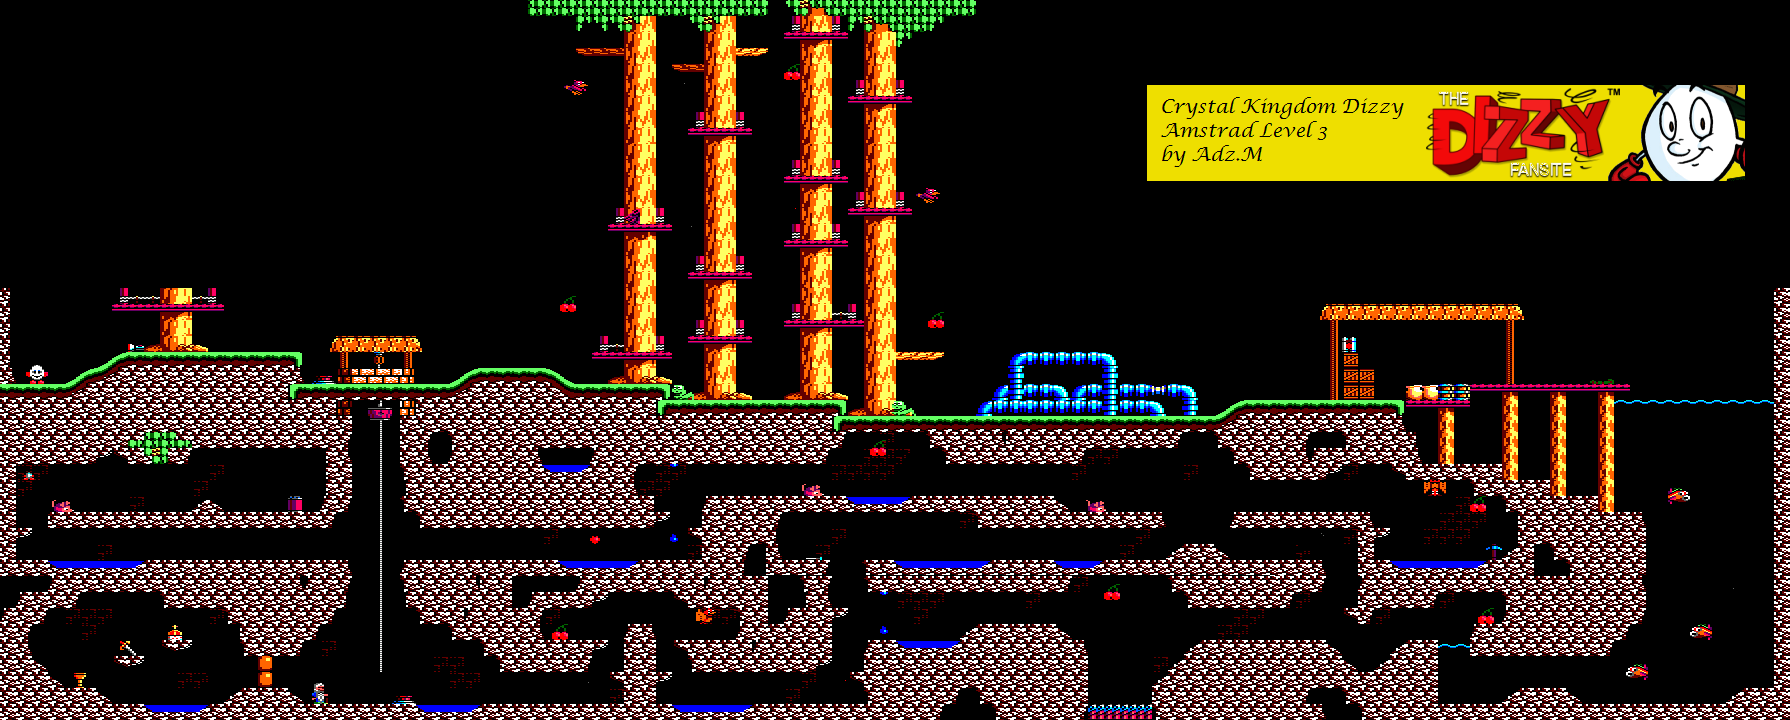 Level 3 Game map (Amstrad)